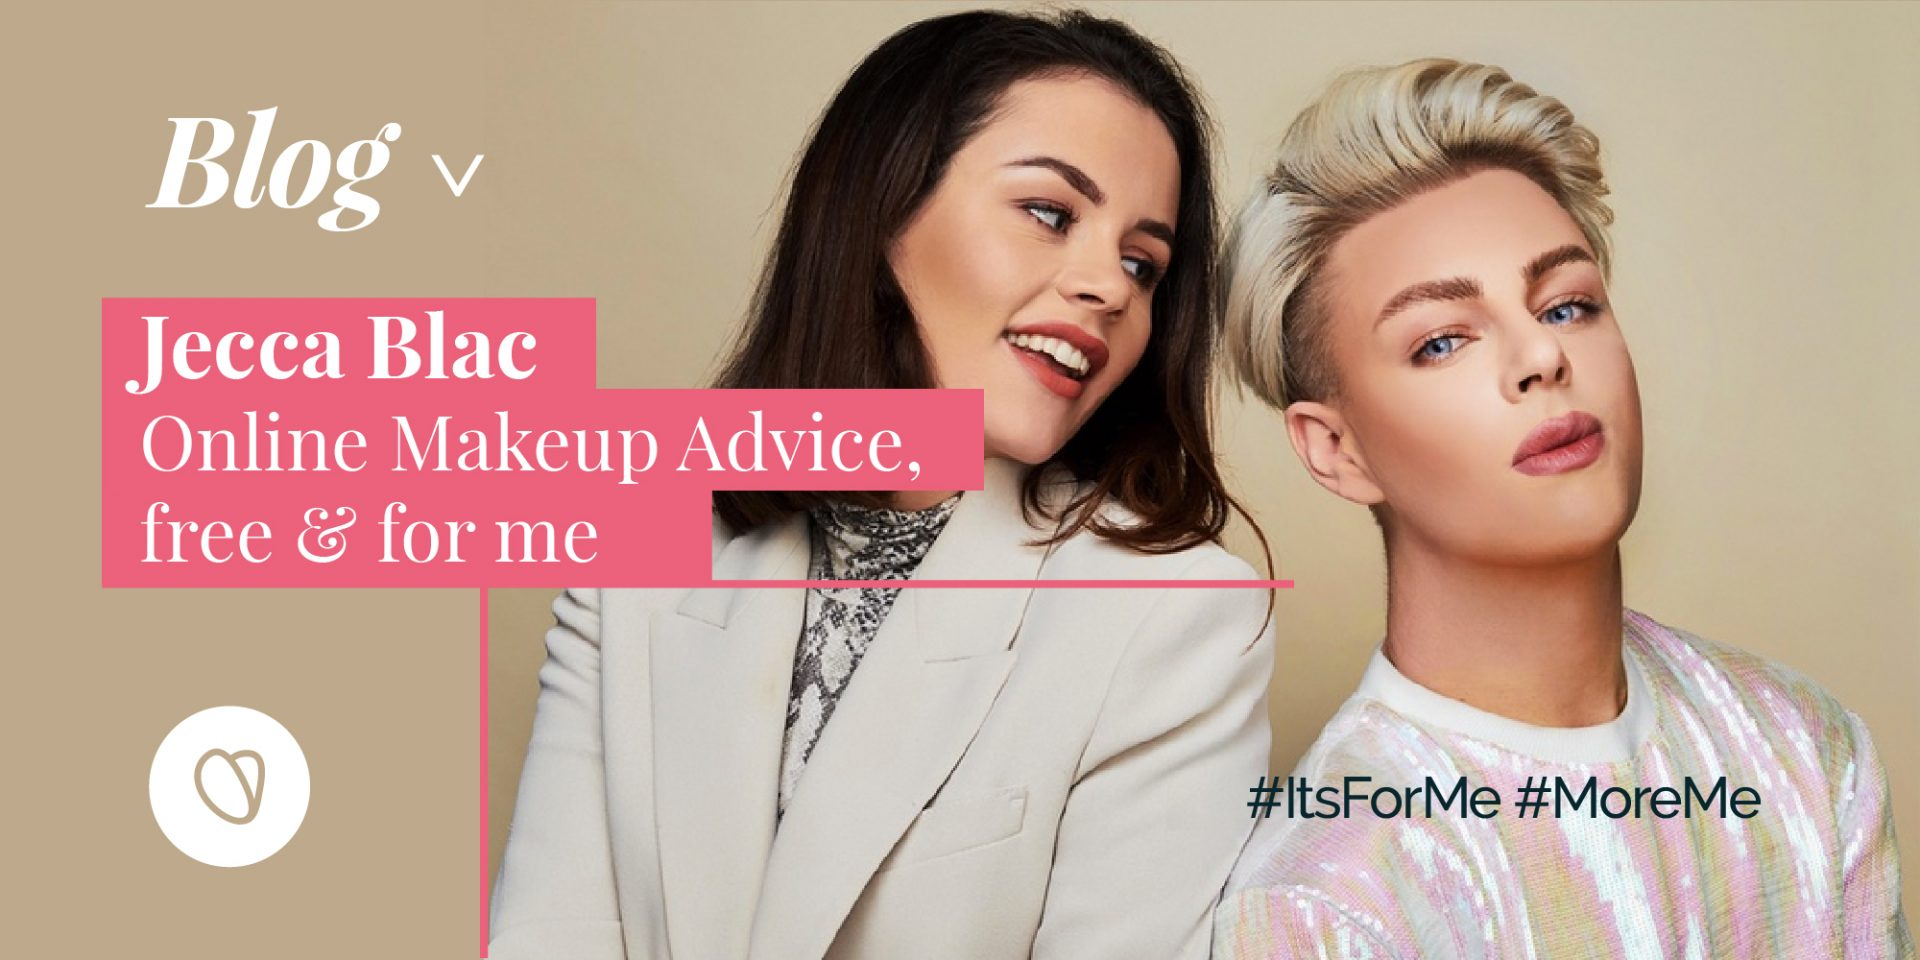 Free Makeup Advice for all gender identities – Online!